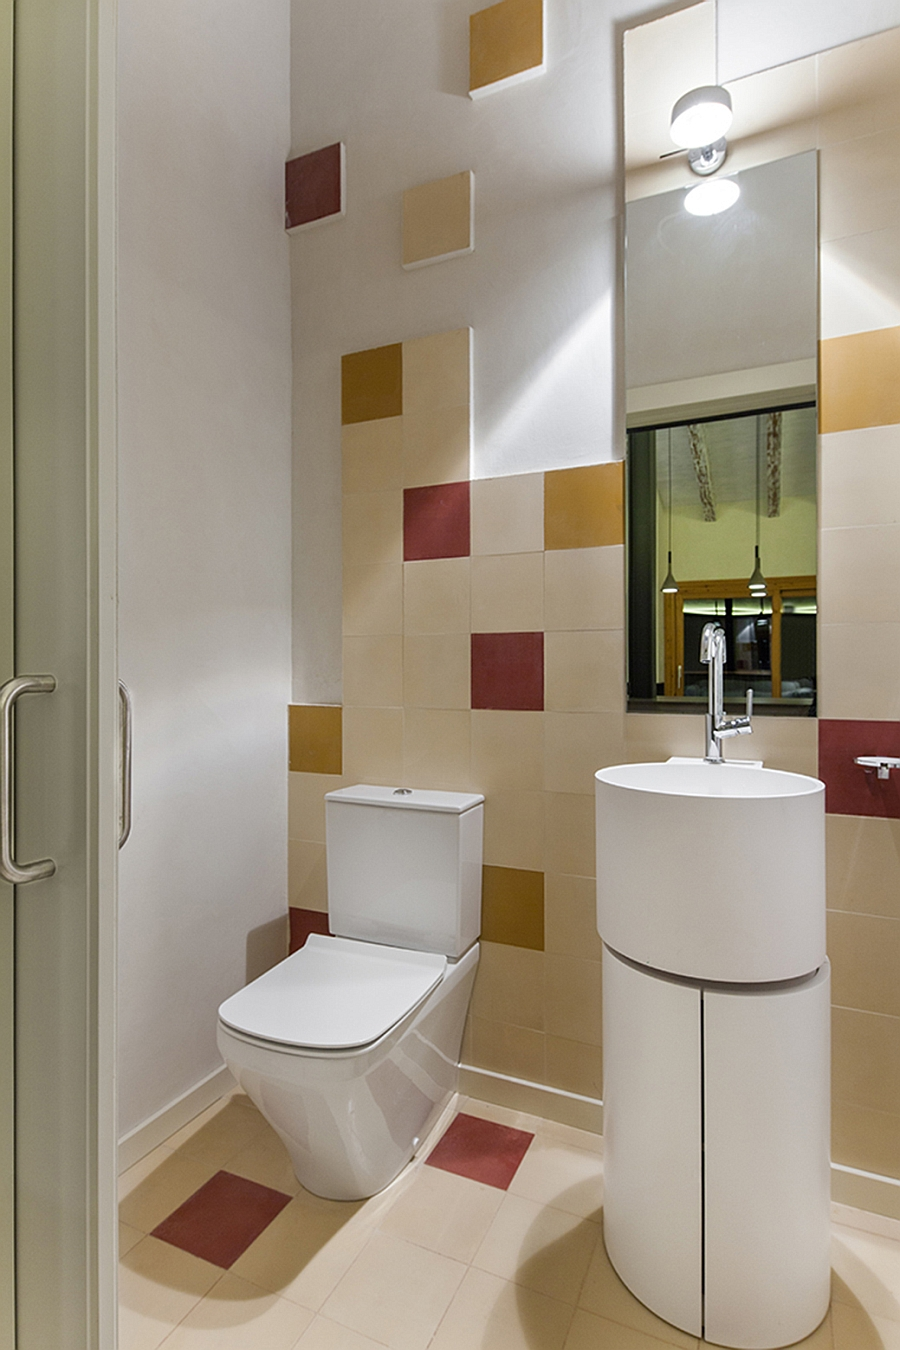 Small bathroom with fun use of red and yellow tiles